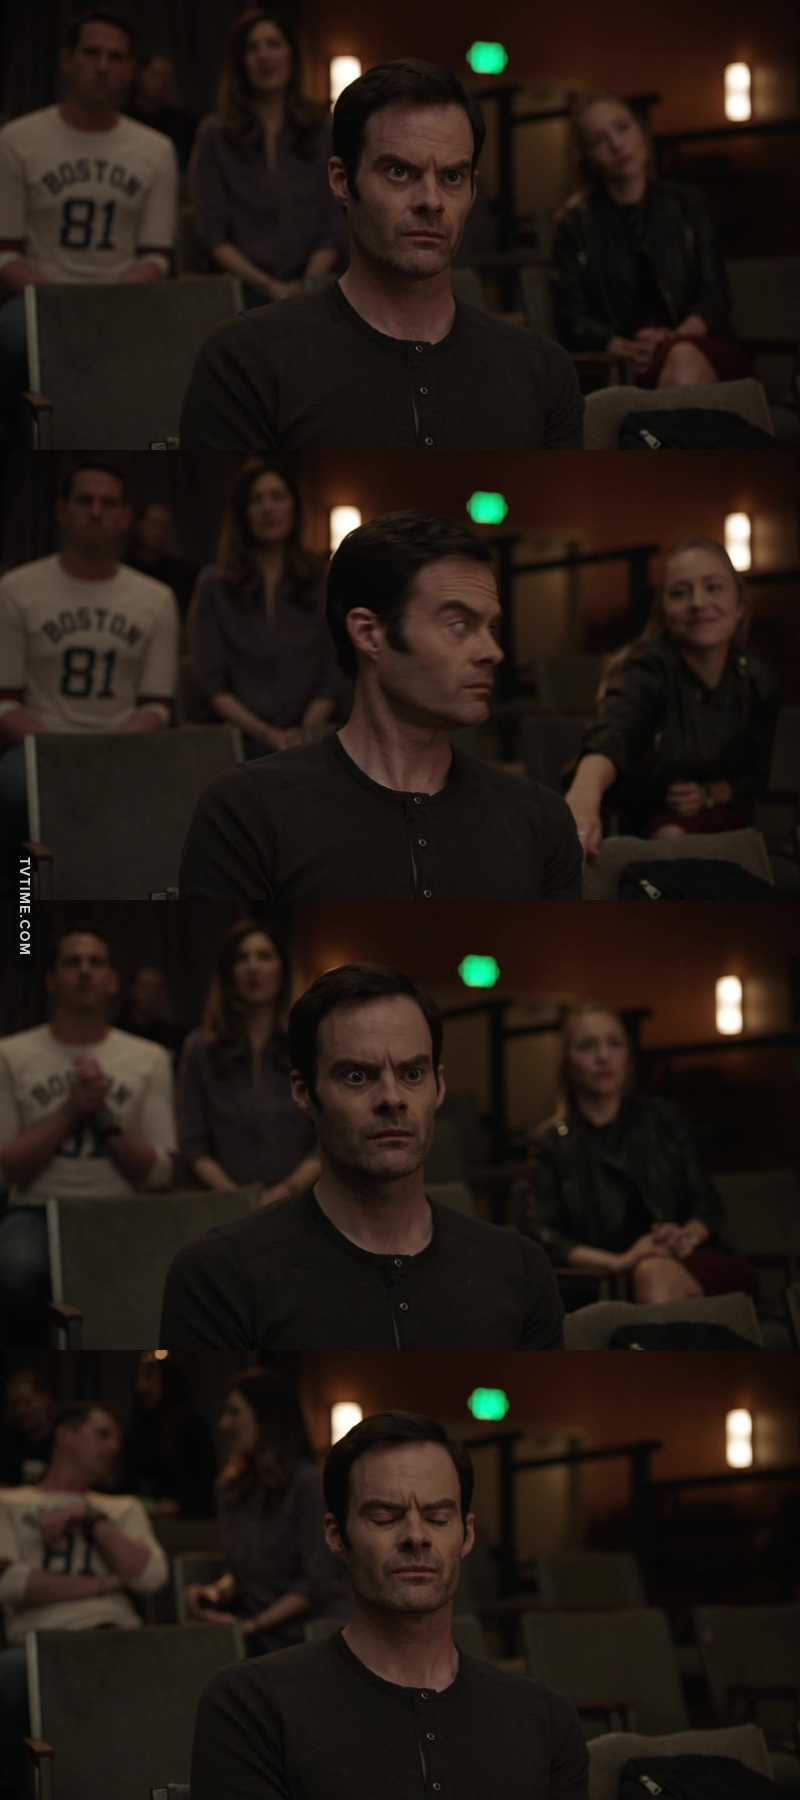 The best facial expressions.